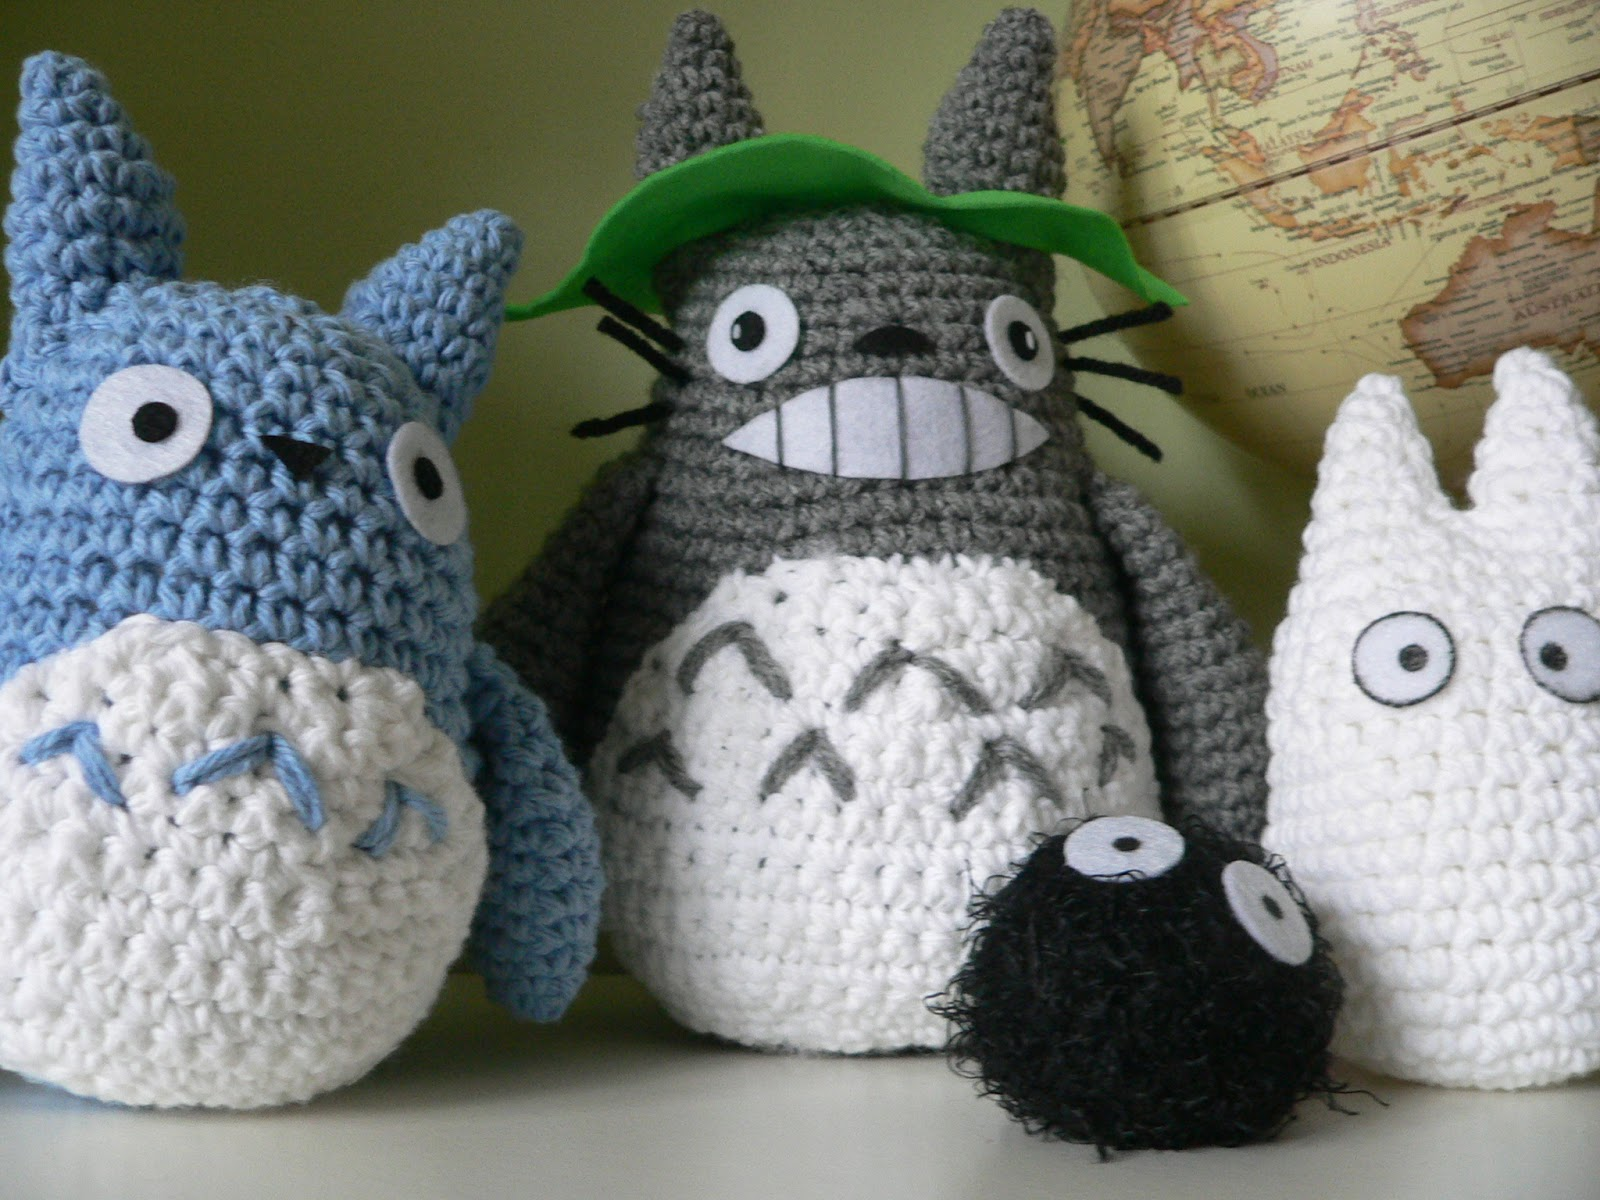 My Neighbor Totoro Family